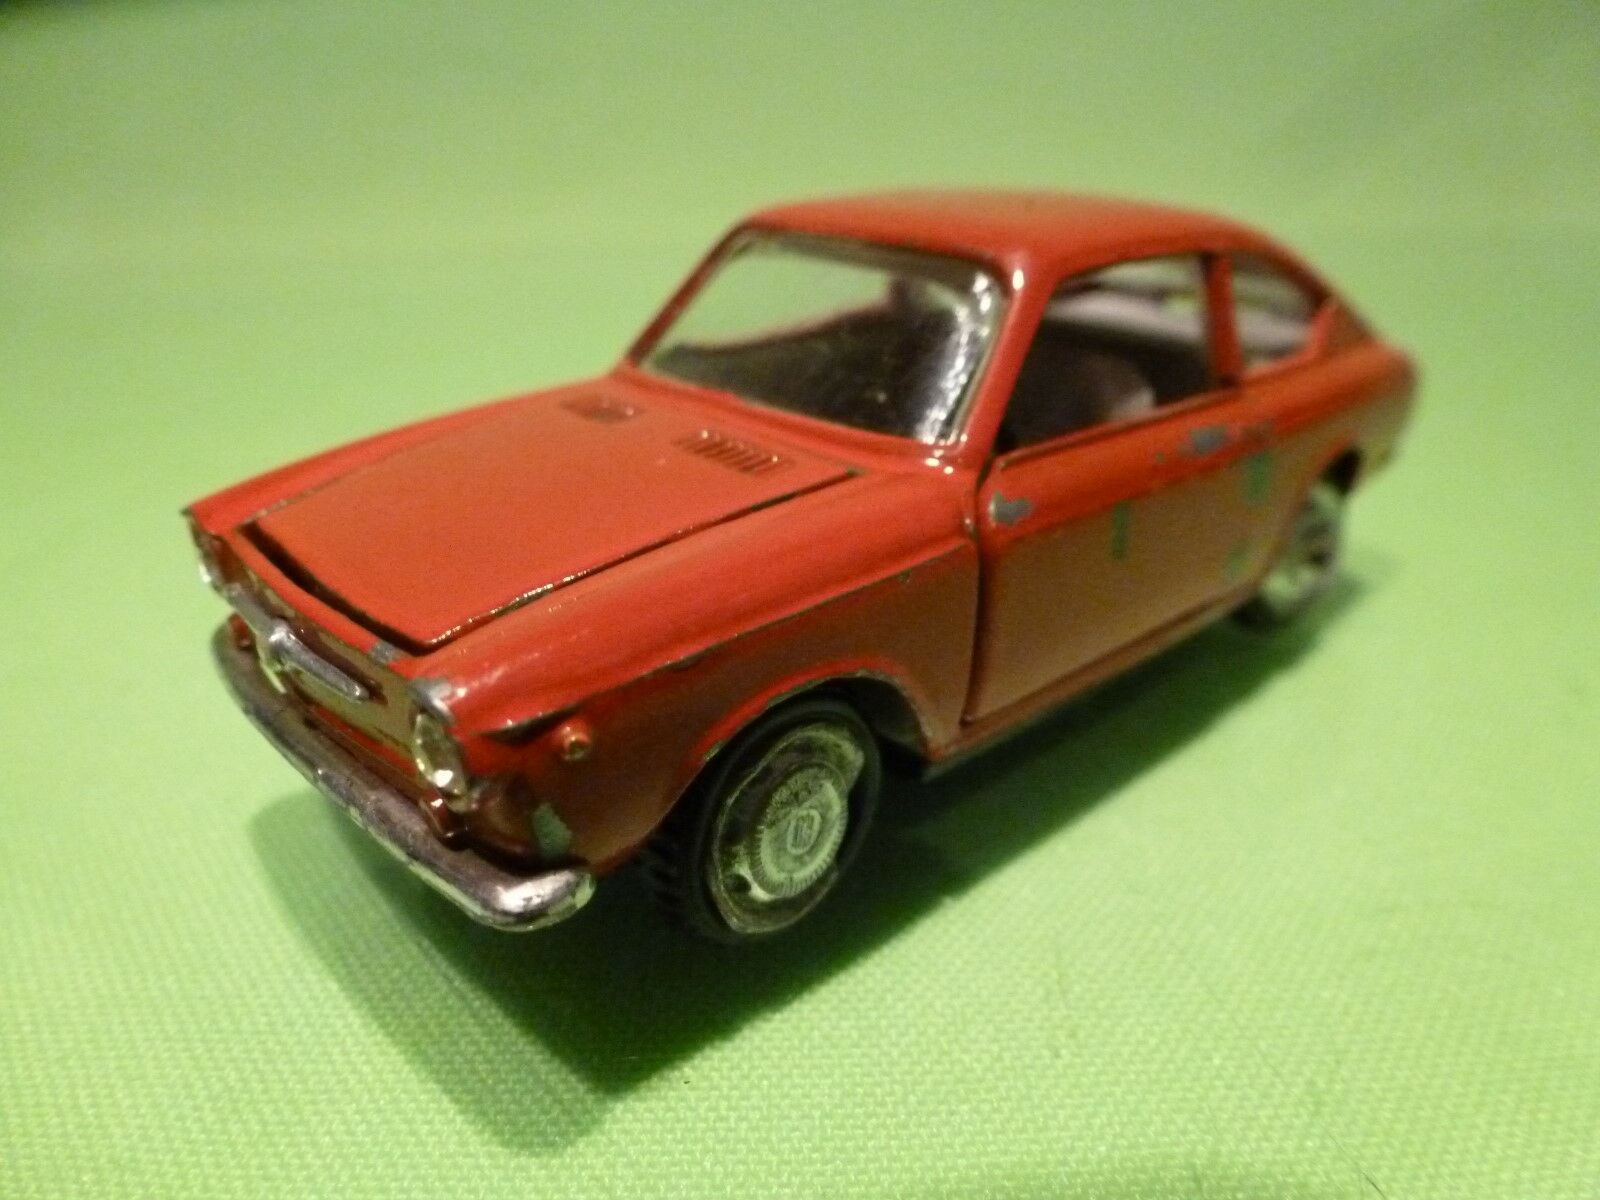 EDIL TOYS -  1 43 FIAT 850 COUPE  - NICE CONDITION